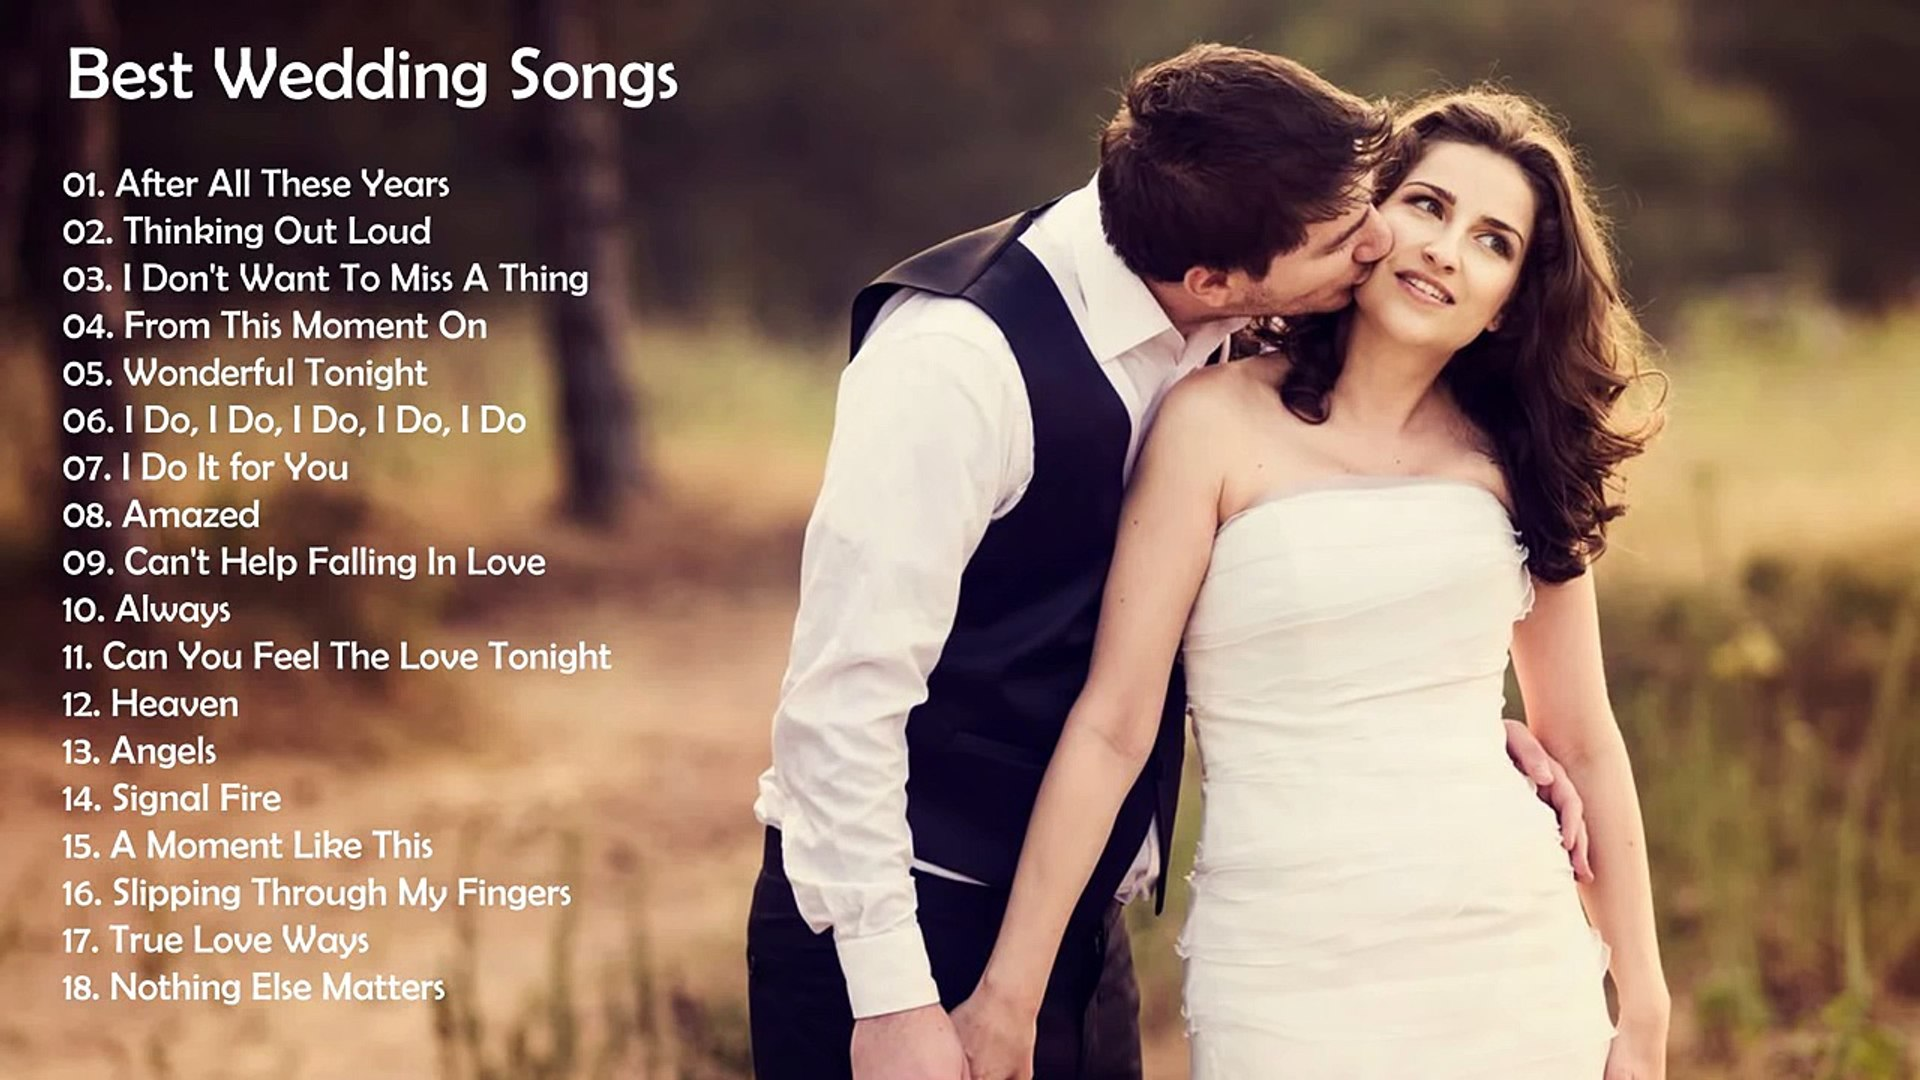 Best Wedding Songs Top 10 Wedding Songs 2015 Top 10 Modern Wedding Songs Video Dailymotion